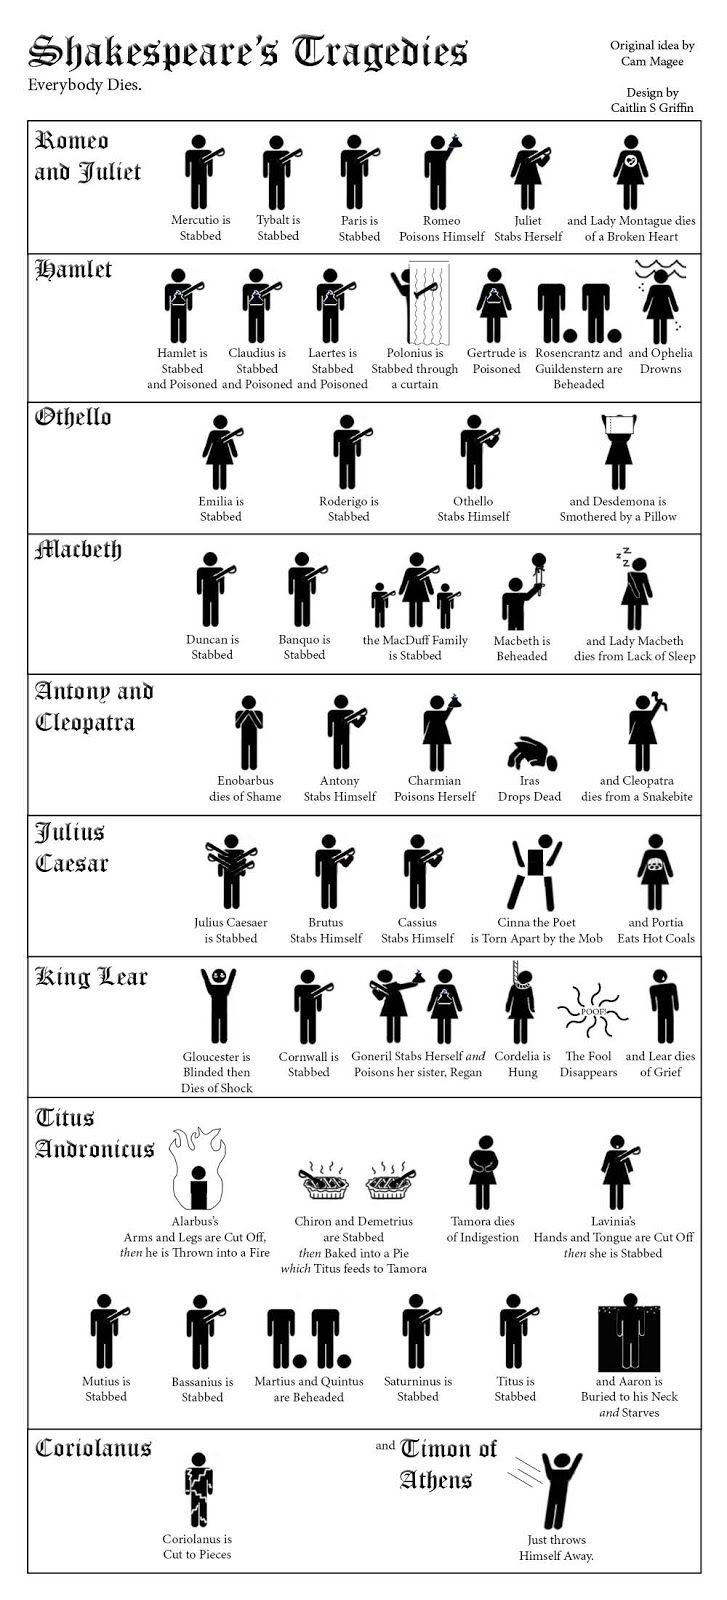 Shakespeare and his tragedies in a nutshell. :) Love this, straight to the point!